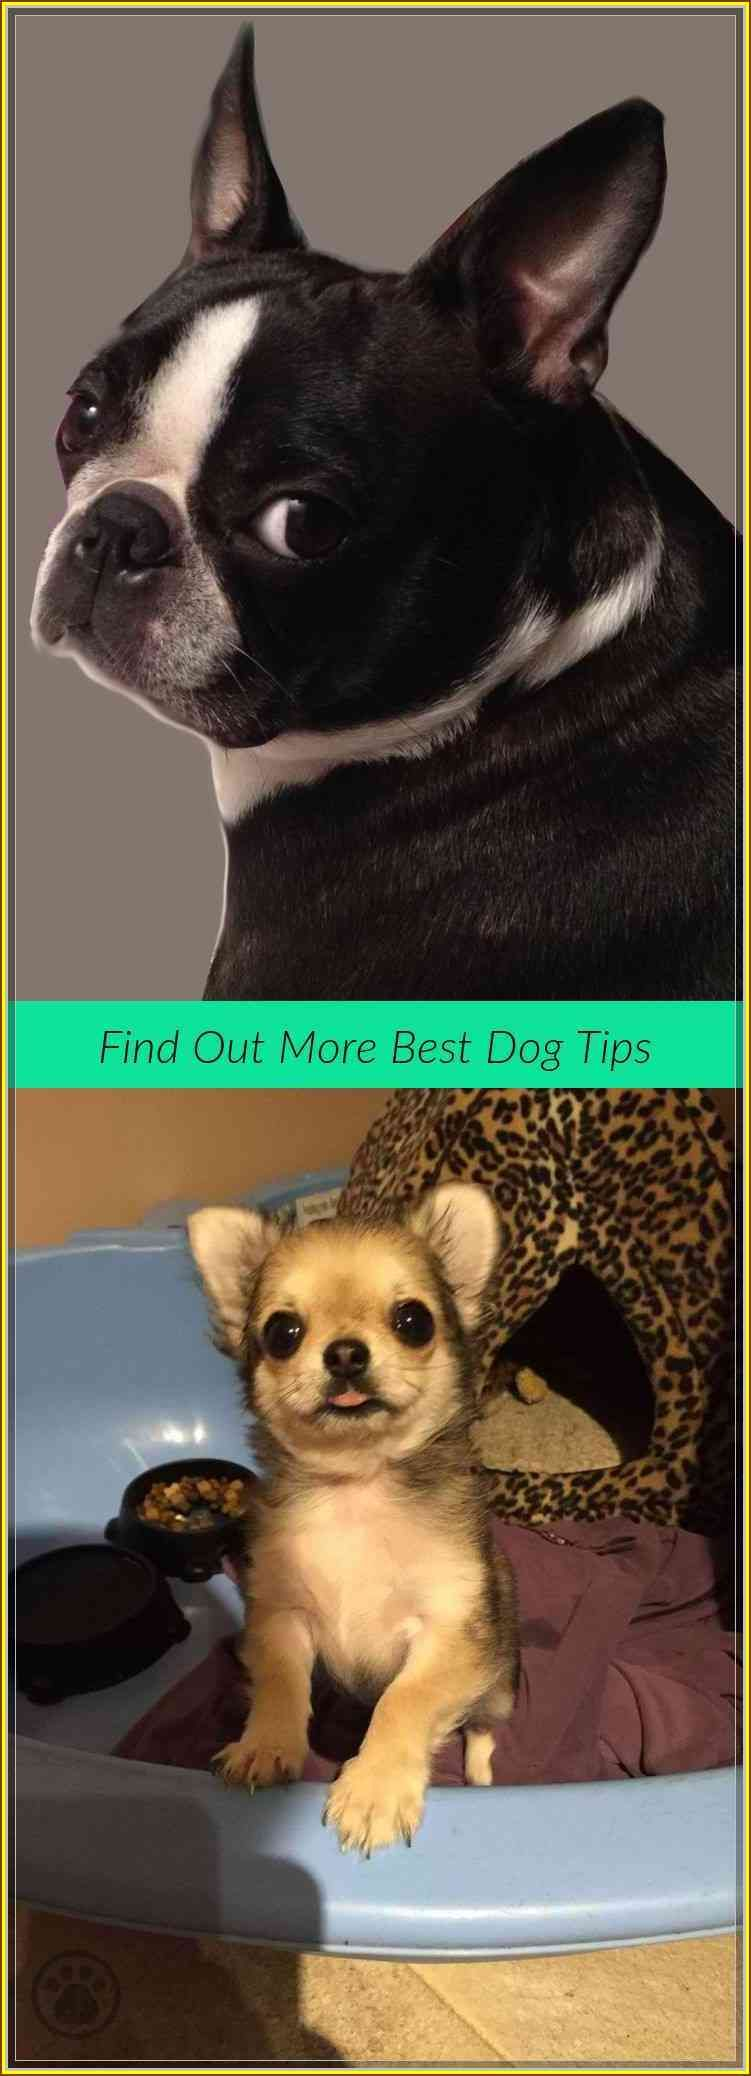 Tips You Should Know When Dealing With Dogs Dog care